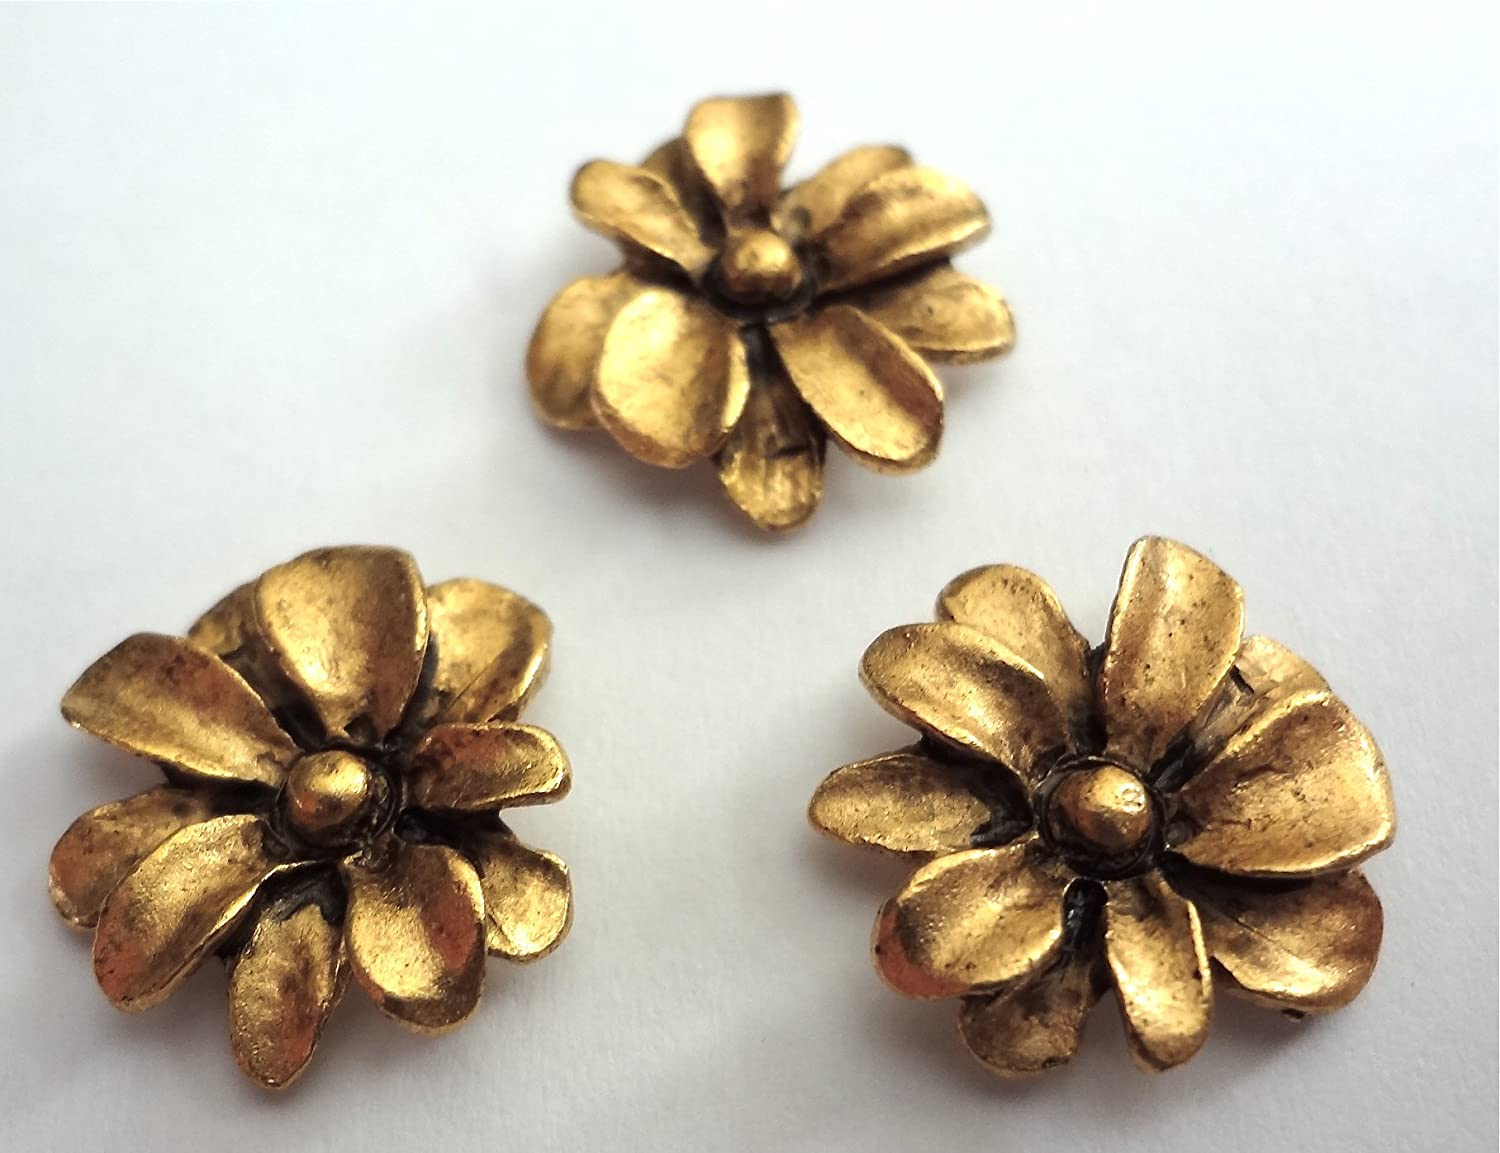 *NEW ITEM* ANTIQUE GOLD METAL SPRING FLOWERS T-506MG Set of 15